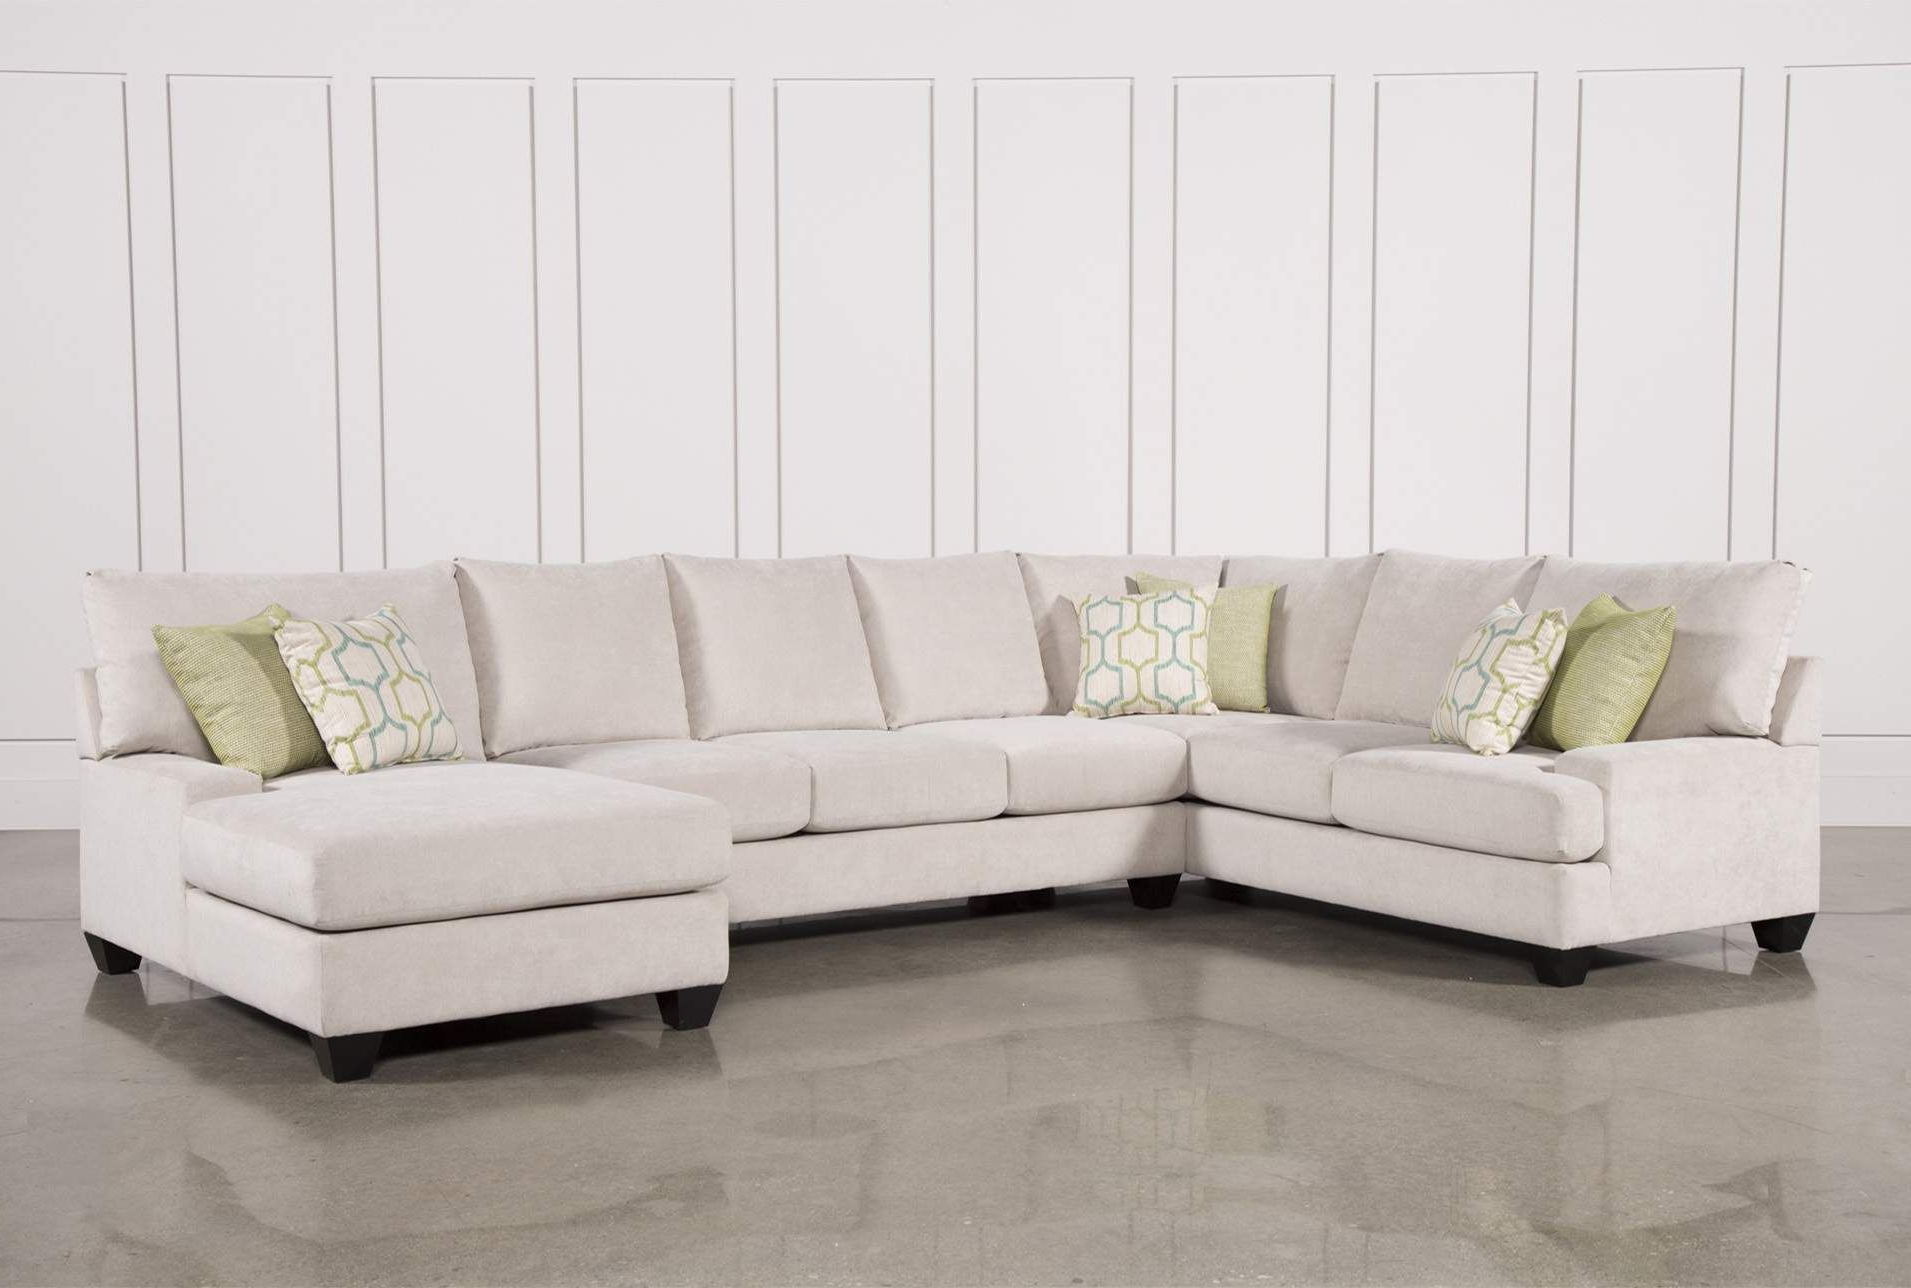 Most Recently Released Harper Foam 3 Piece Sectional W/raf Chaise Pertaining To Meyer 3 Piece Sectionals With Raf Chaise (View 8 of 20)